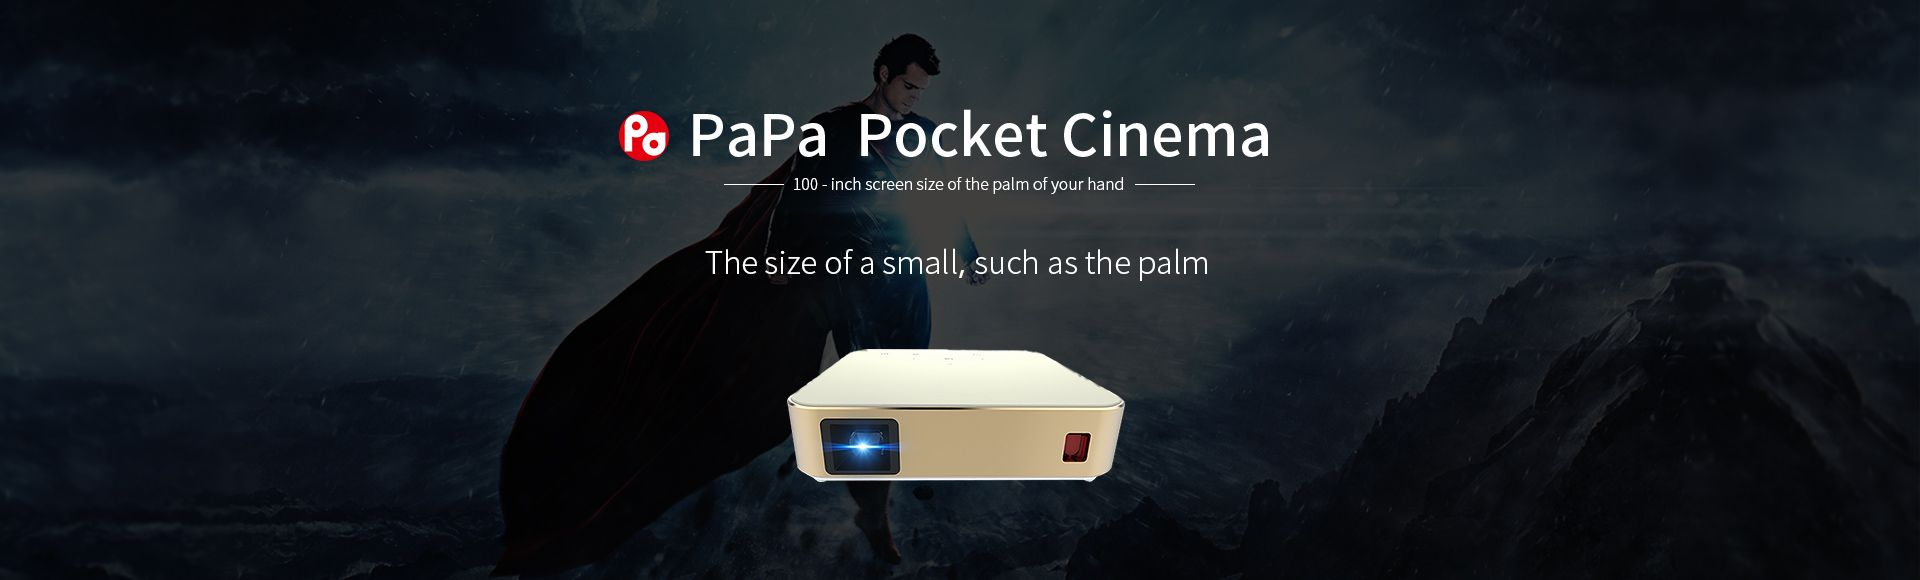 PaPa Pa01 Pocket Cinema - Pocket Cinema Portable Home Video Phone Projector Mini Cell Phone Projector Support 1080P WiFi 100 inch Screen TF USB Android 4.4 for Smart Phone